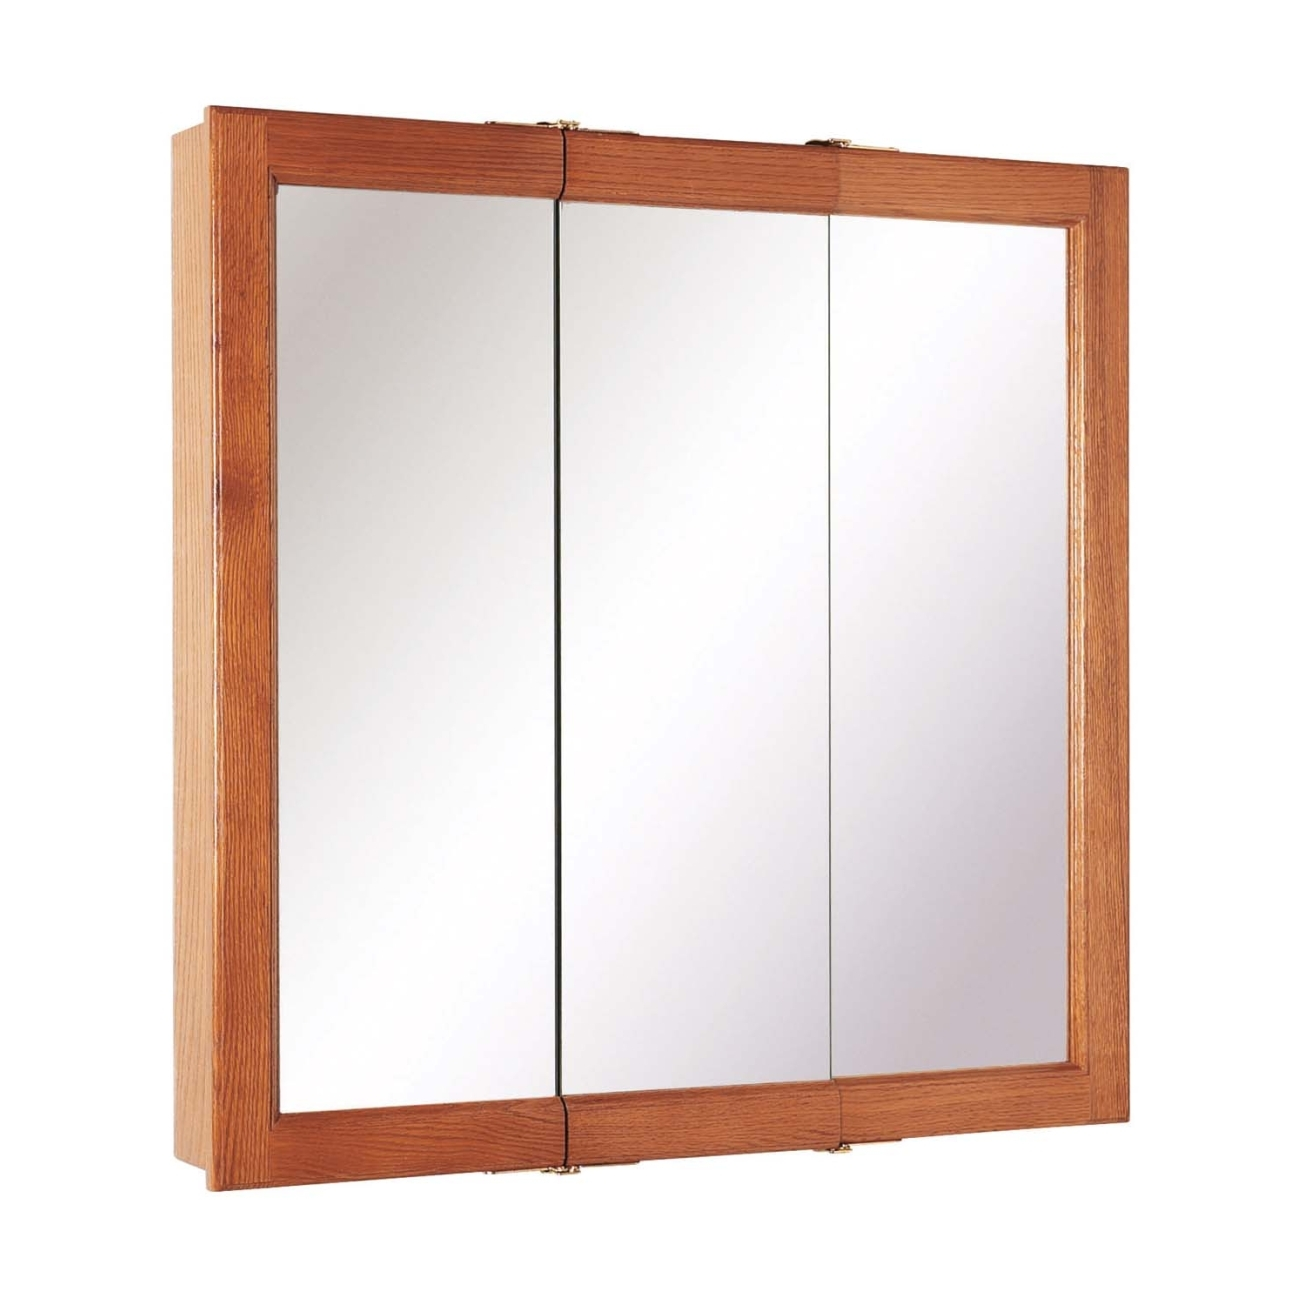 Bathroom Cabinet Mirror Replacement